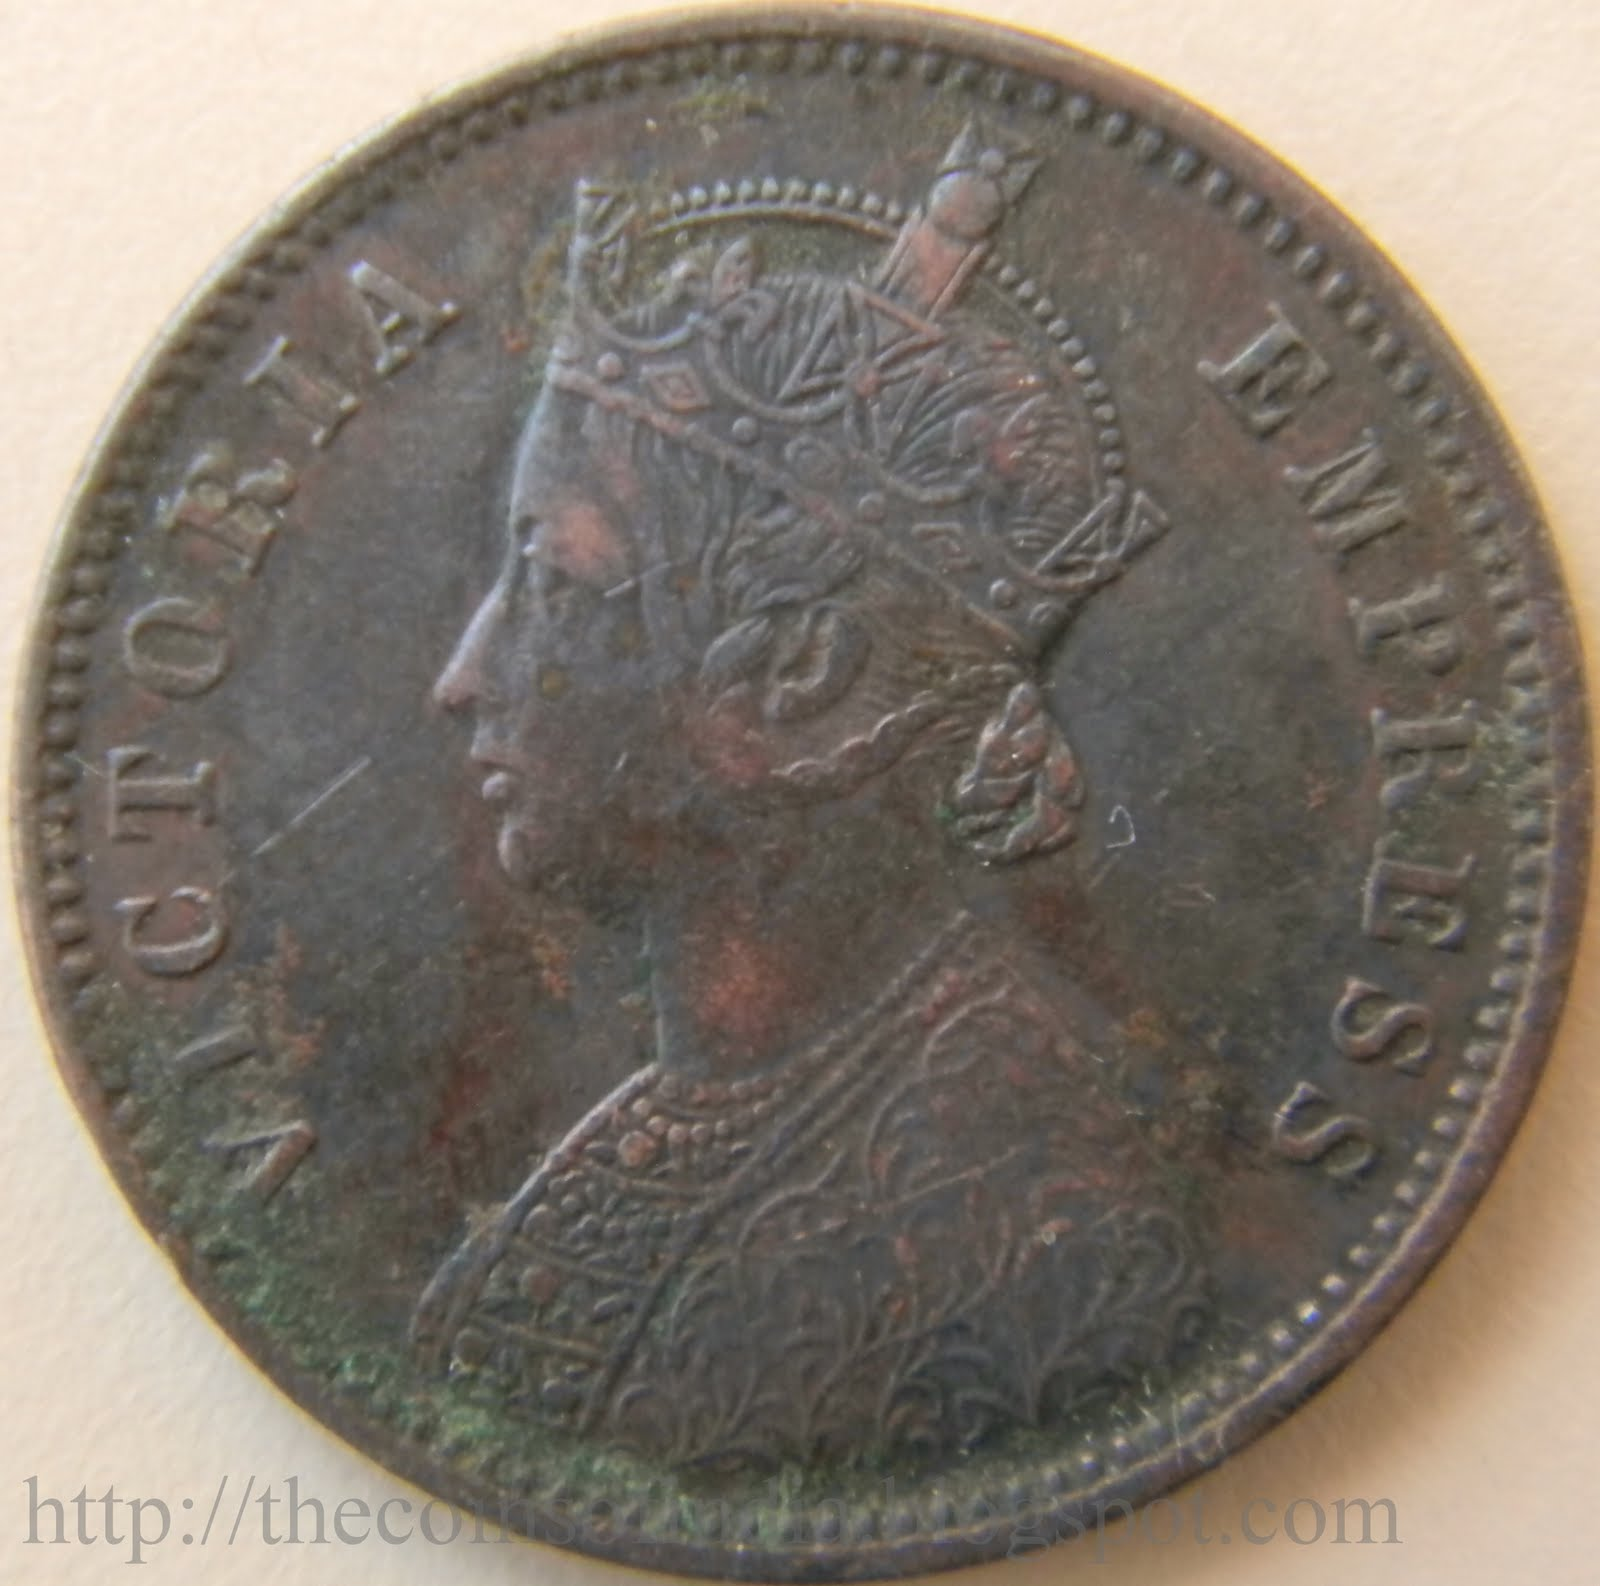 The Coins Of India Queen Victoria British India Coins